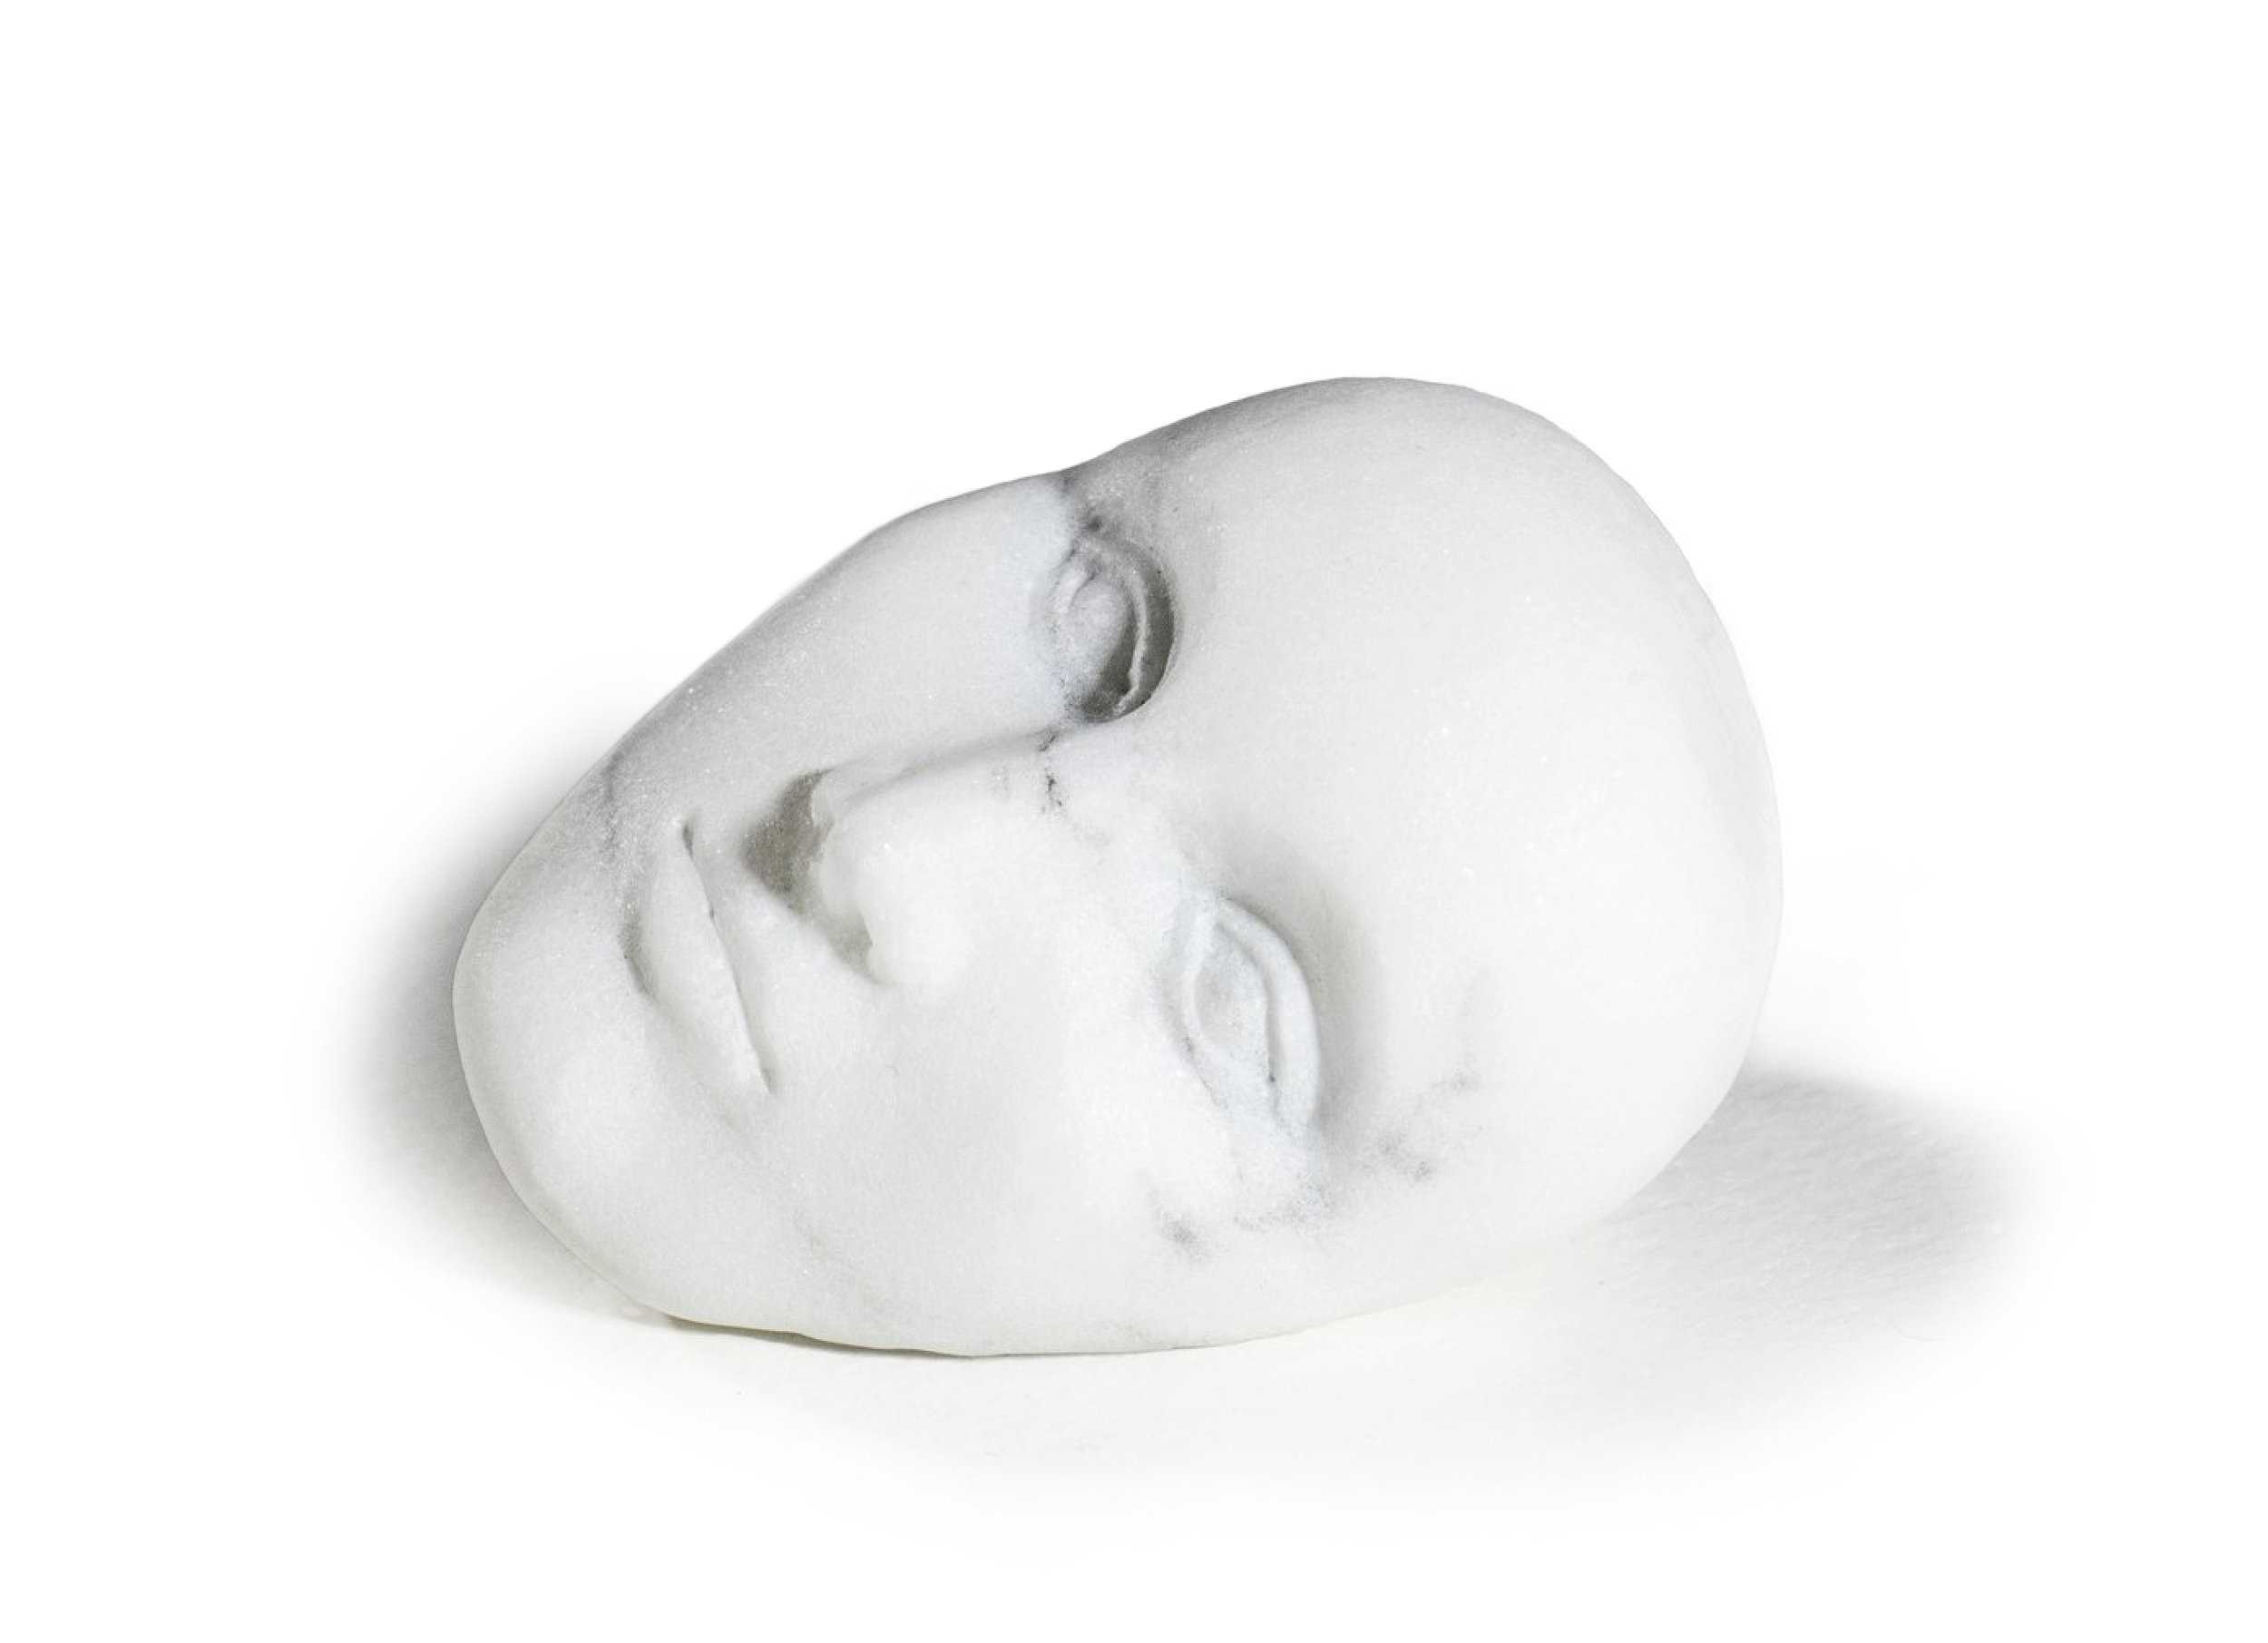 A Face, 2017, marble, 4 x 3 x 3 inches